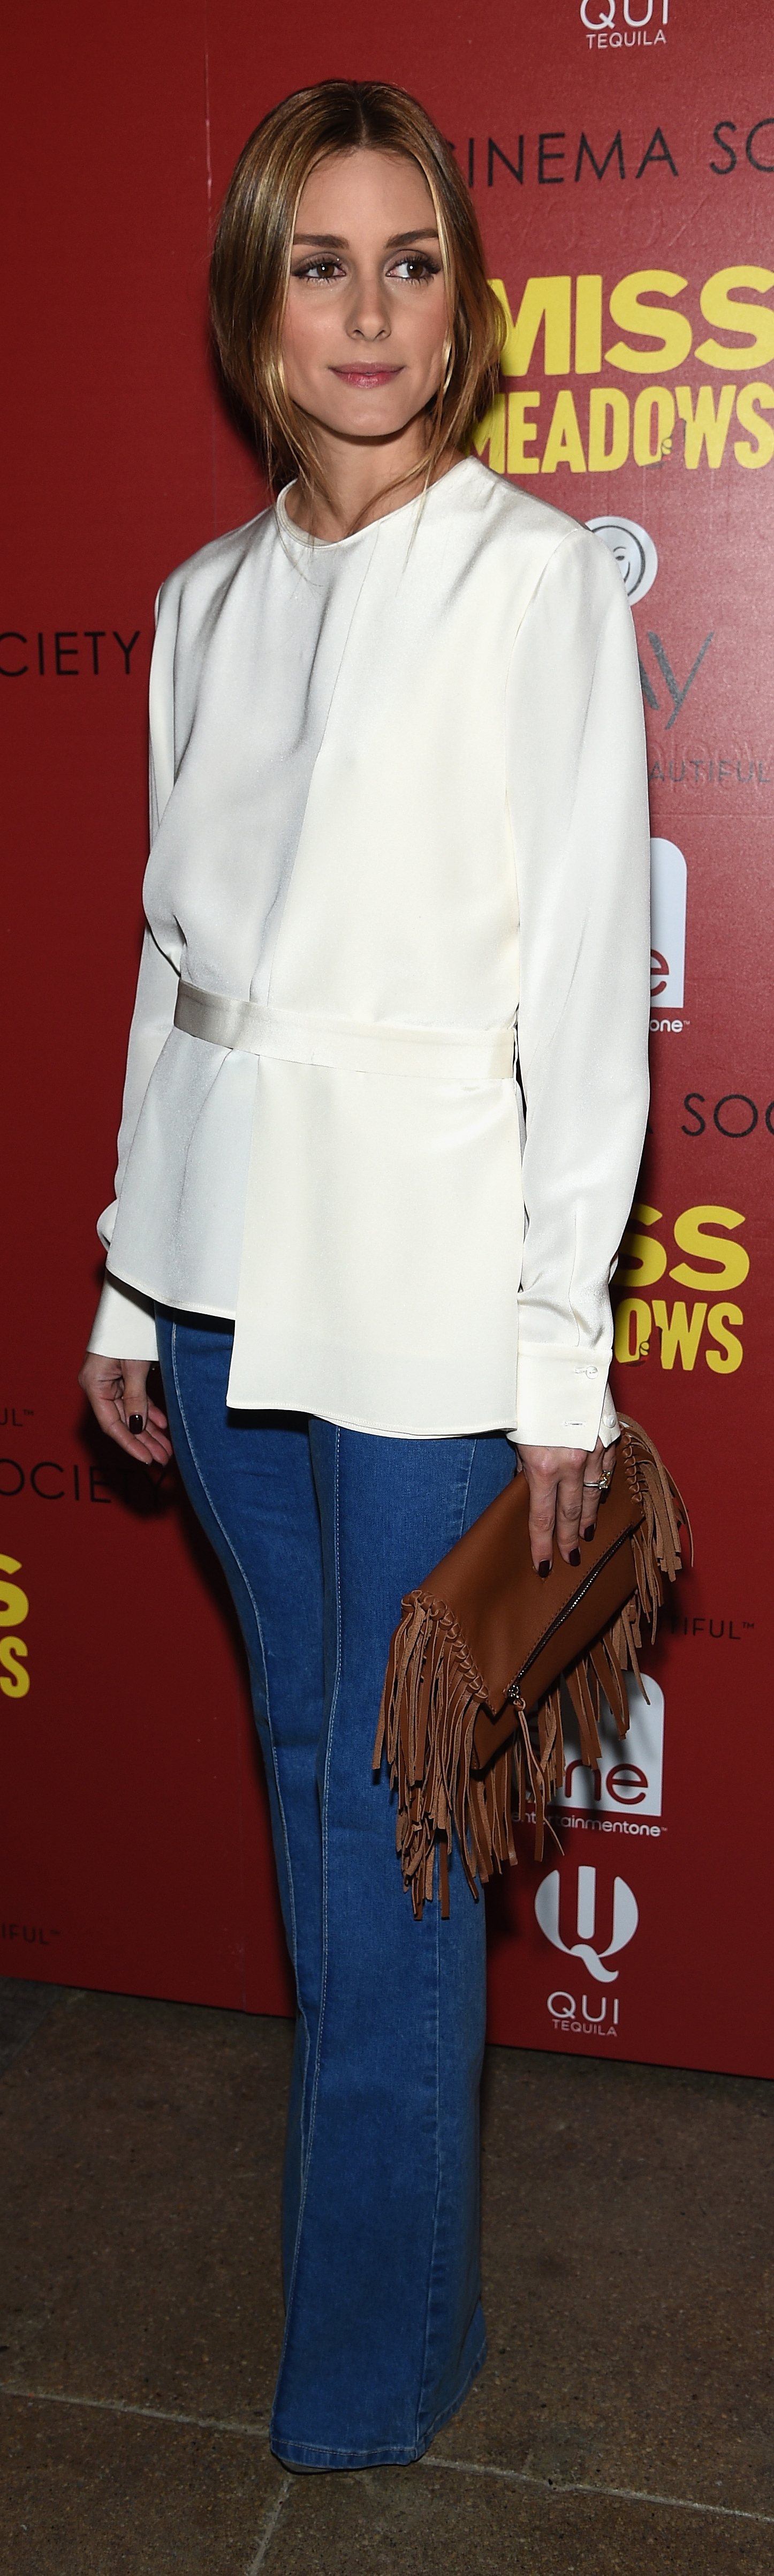 Olivia Palermo shows us two solid ways to dress up our jeans!